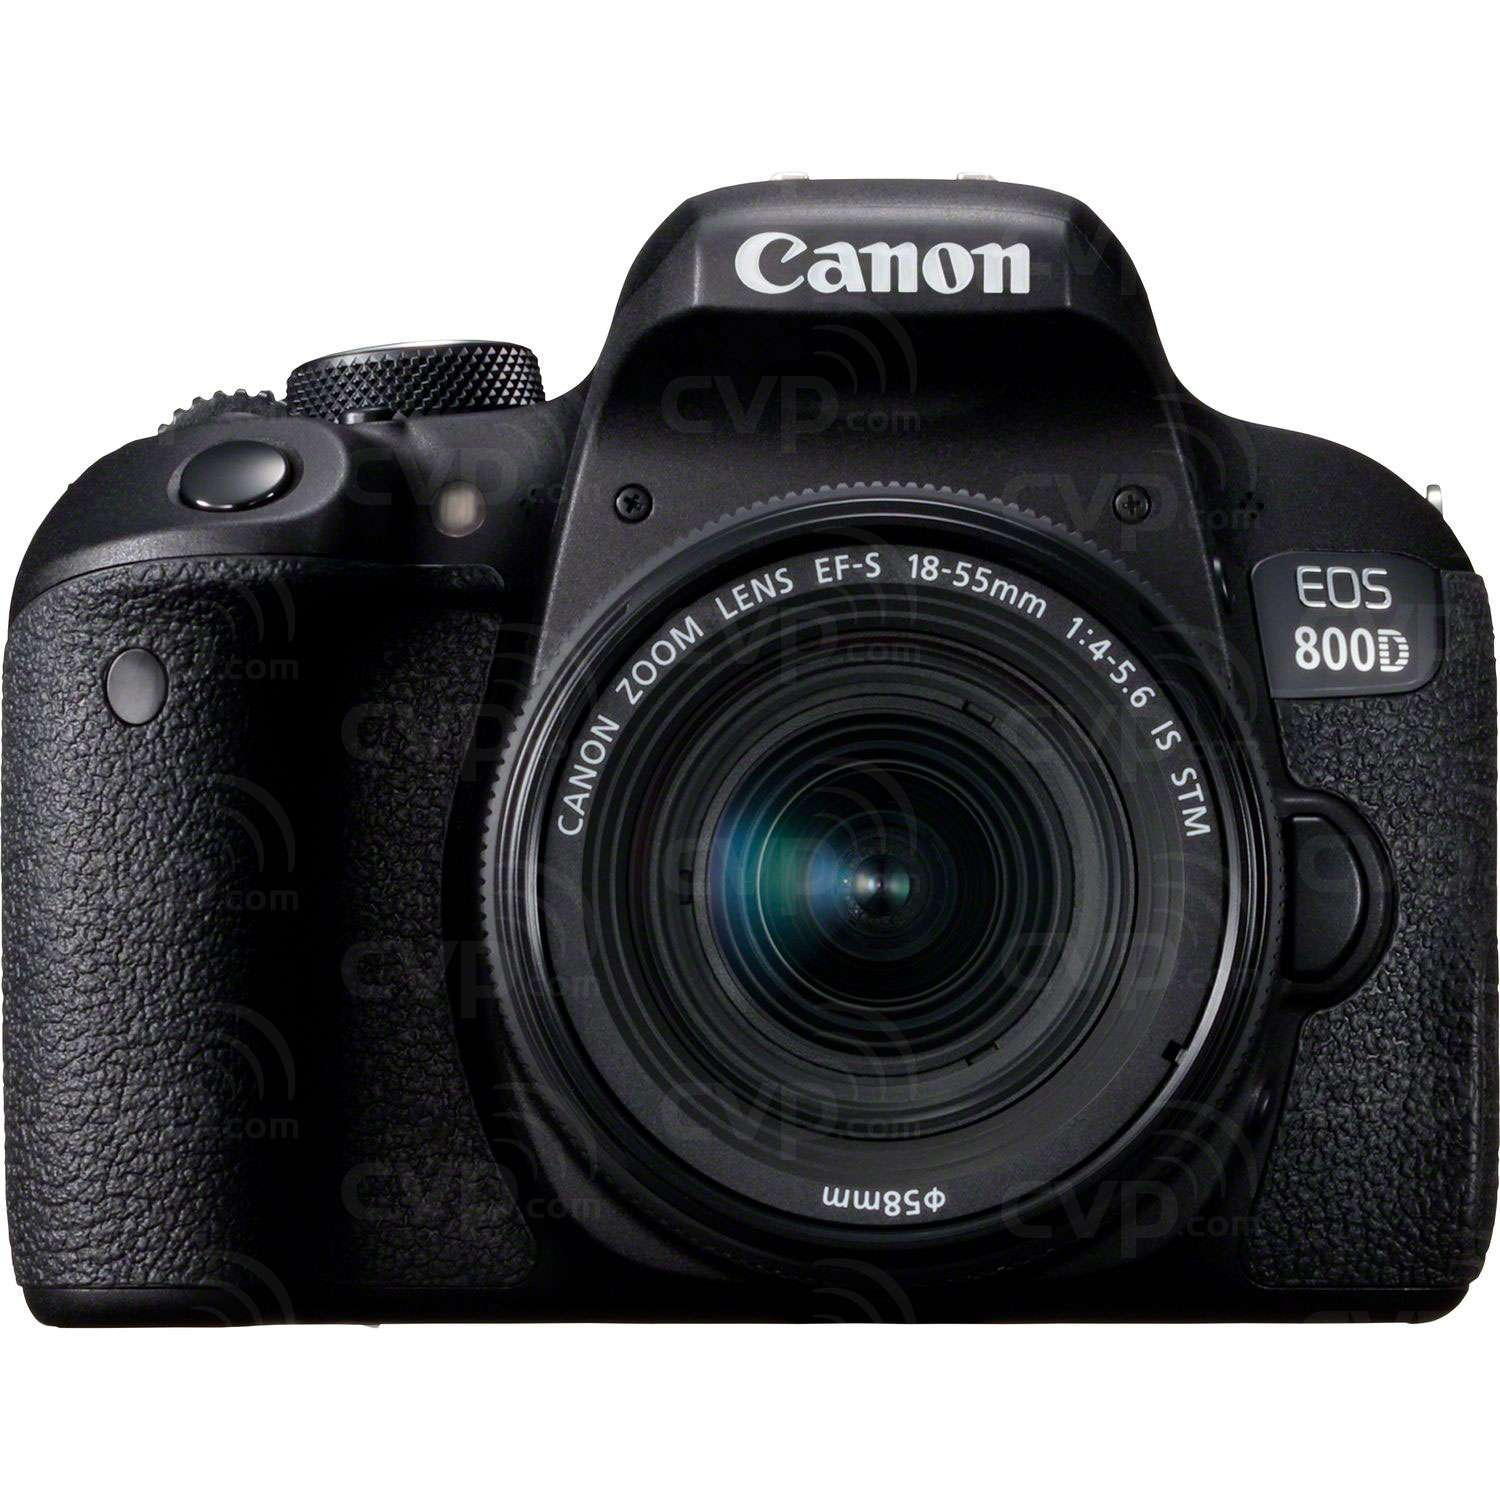 Canon EOS 800D 24.2MP Full HD Digital SLR Camera Body